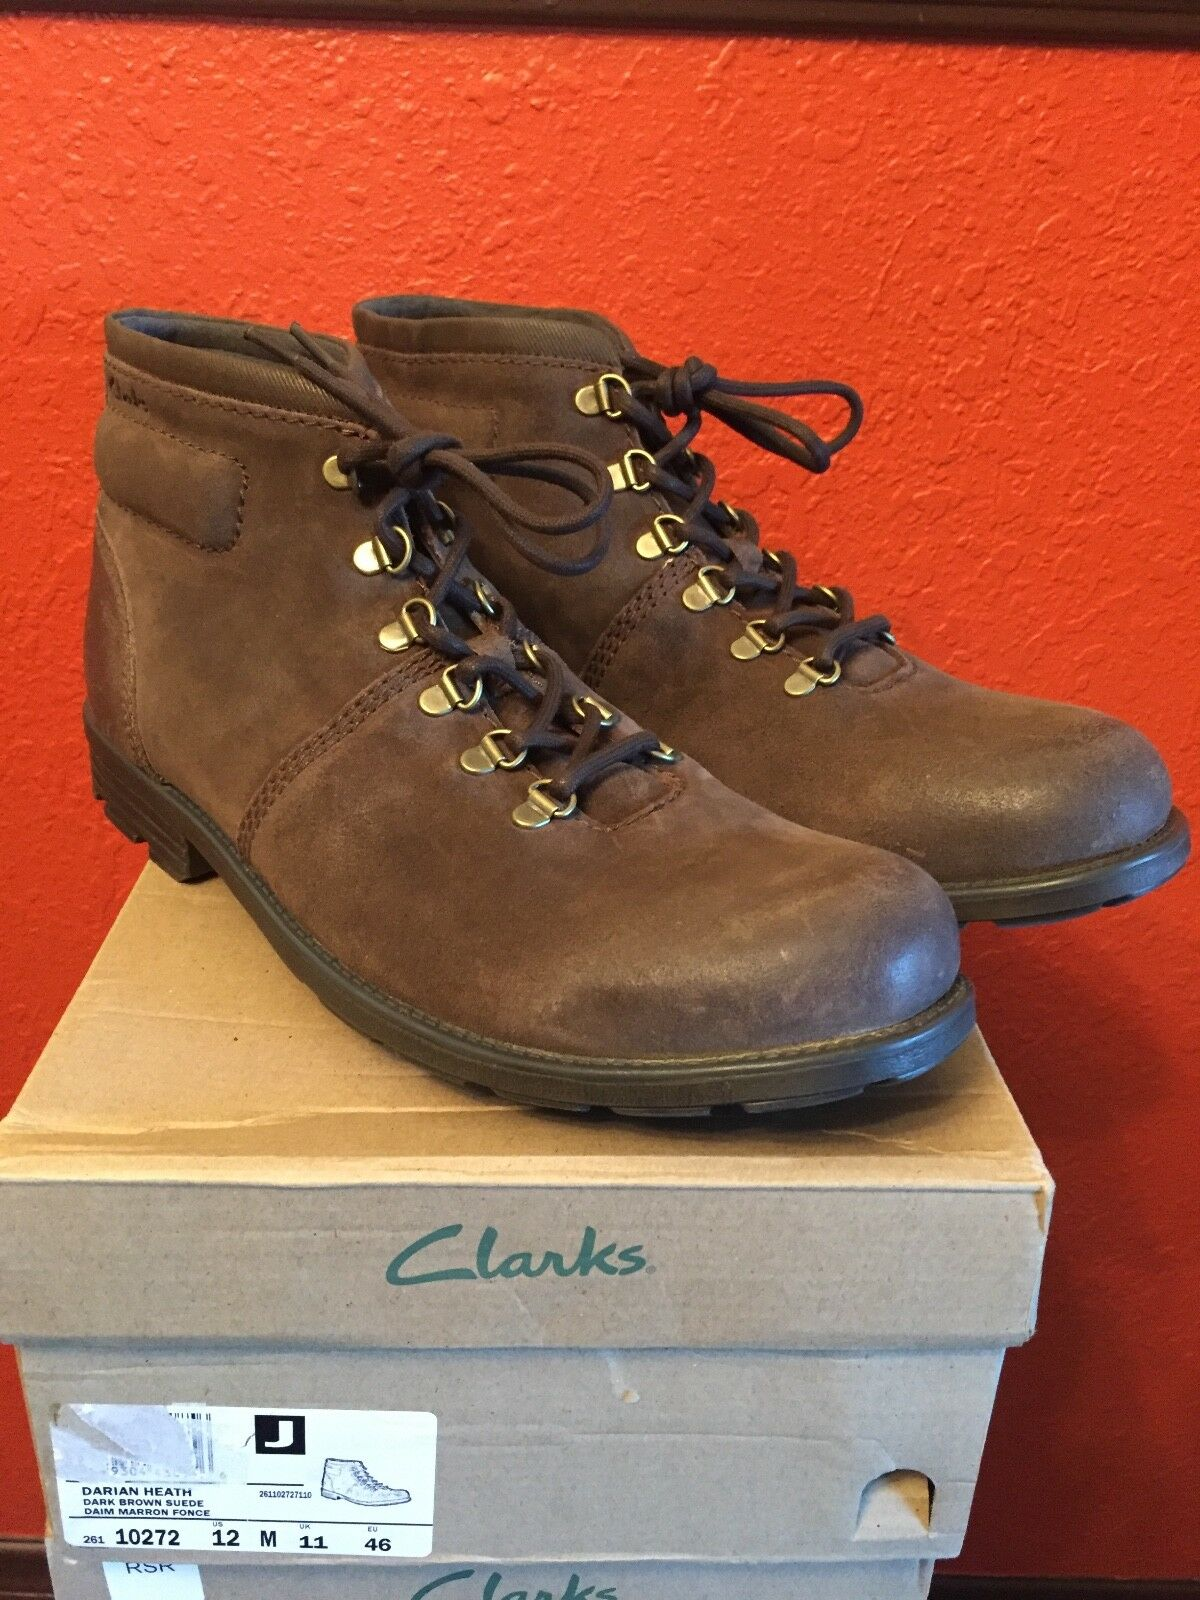 Clarks Mens Size 12M Dark Brown Suede Boot Shoe with Ortholite Sole